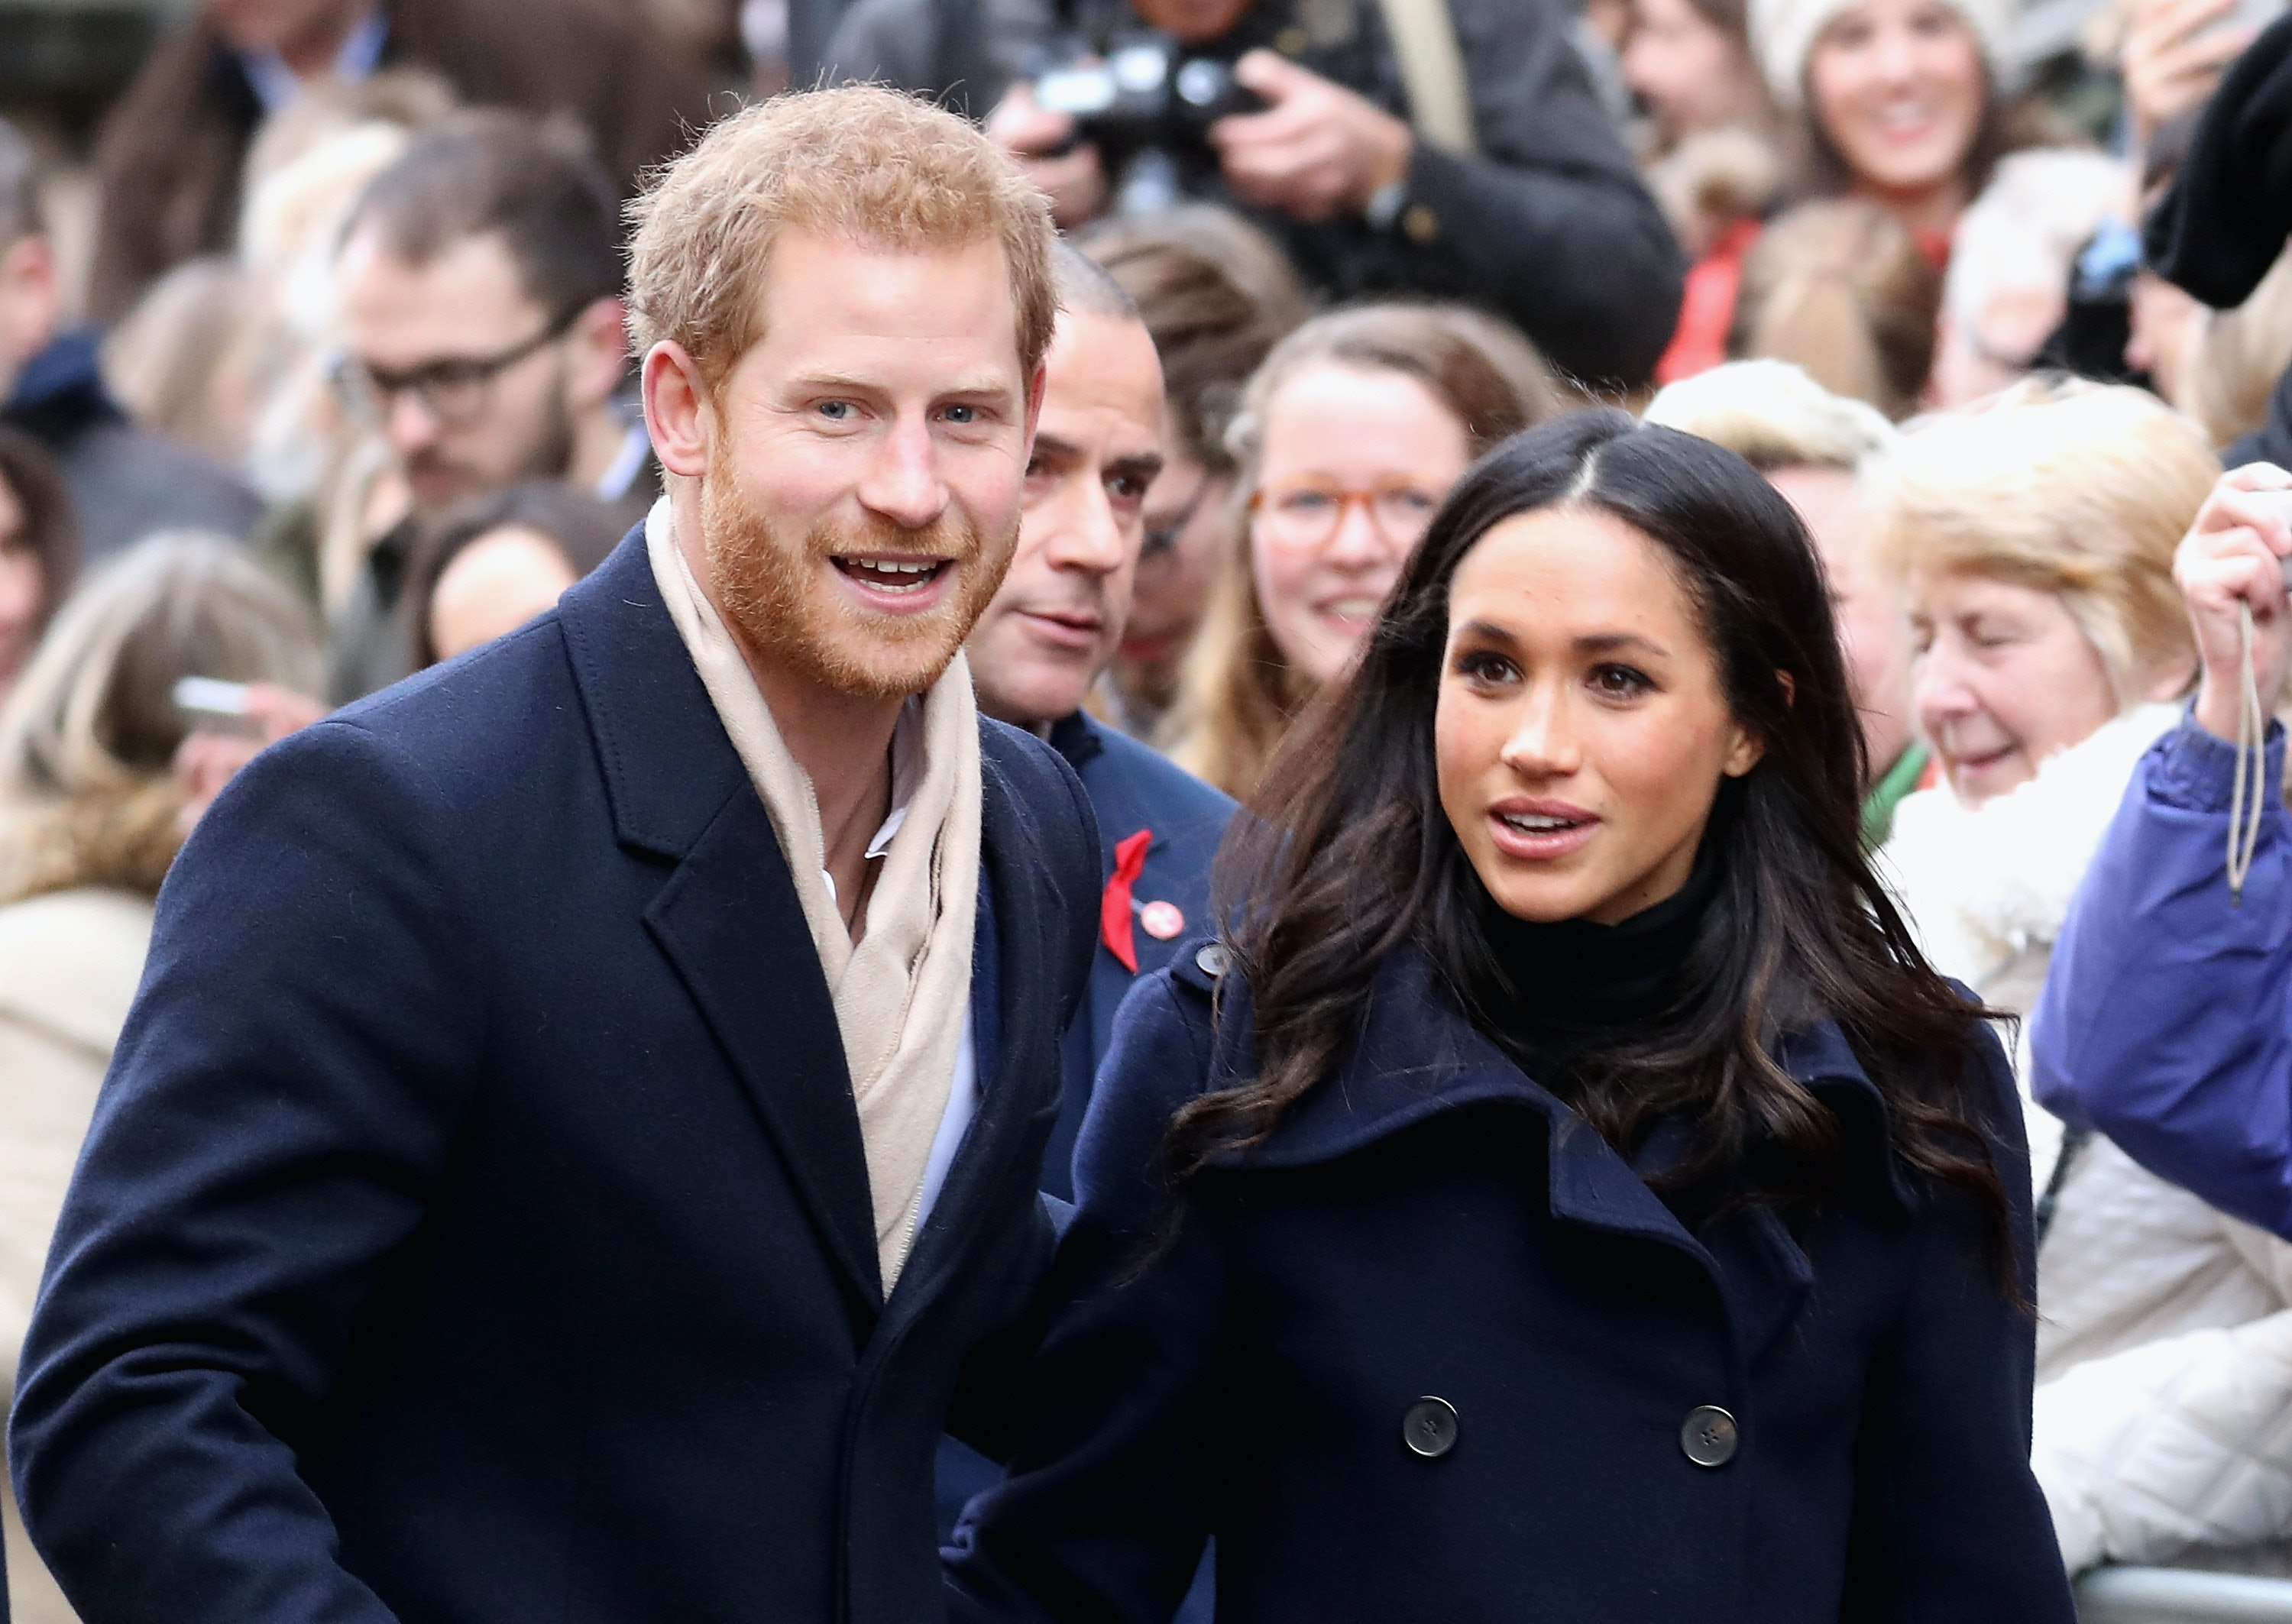 56bd9c1f4dd95 All The Fashion Etiquette Rules The Royal Family Has To Follow